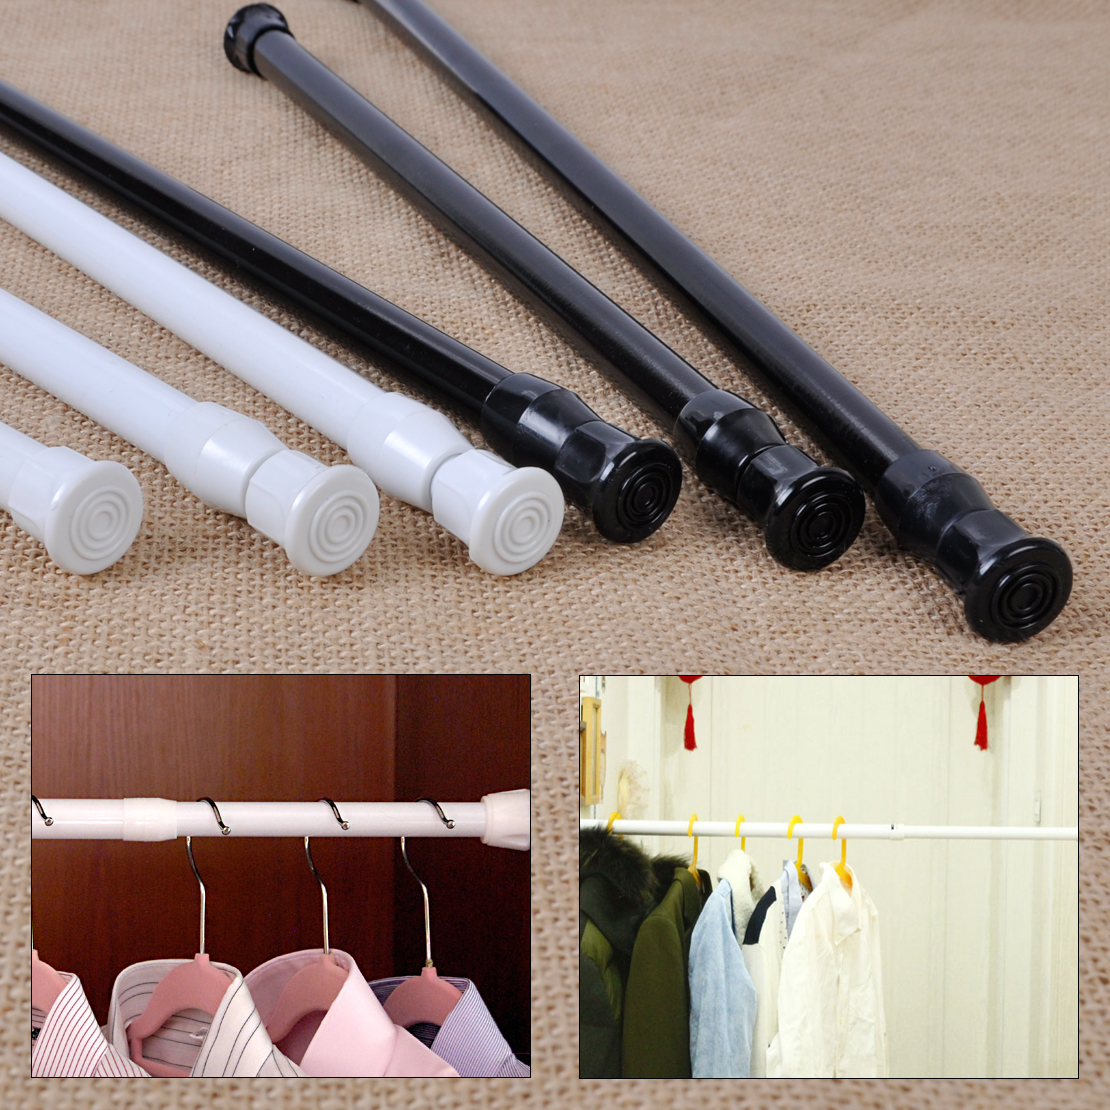 Extendable Adjustable Spring Tension Rod Pole Curtain ...